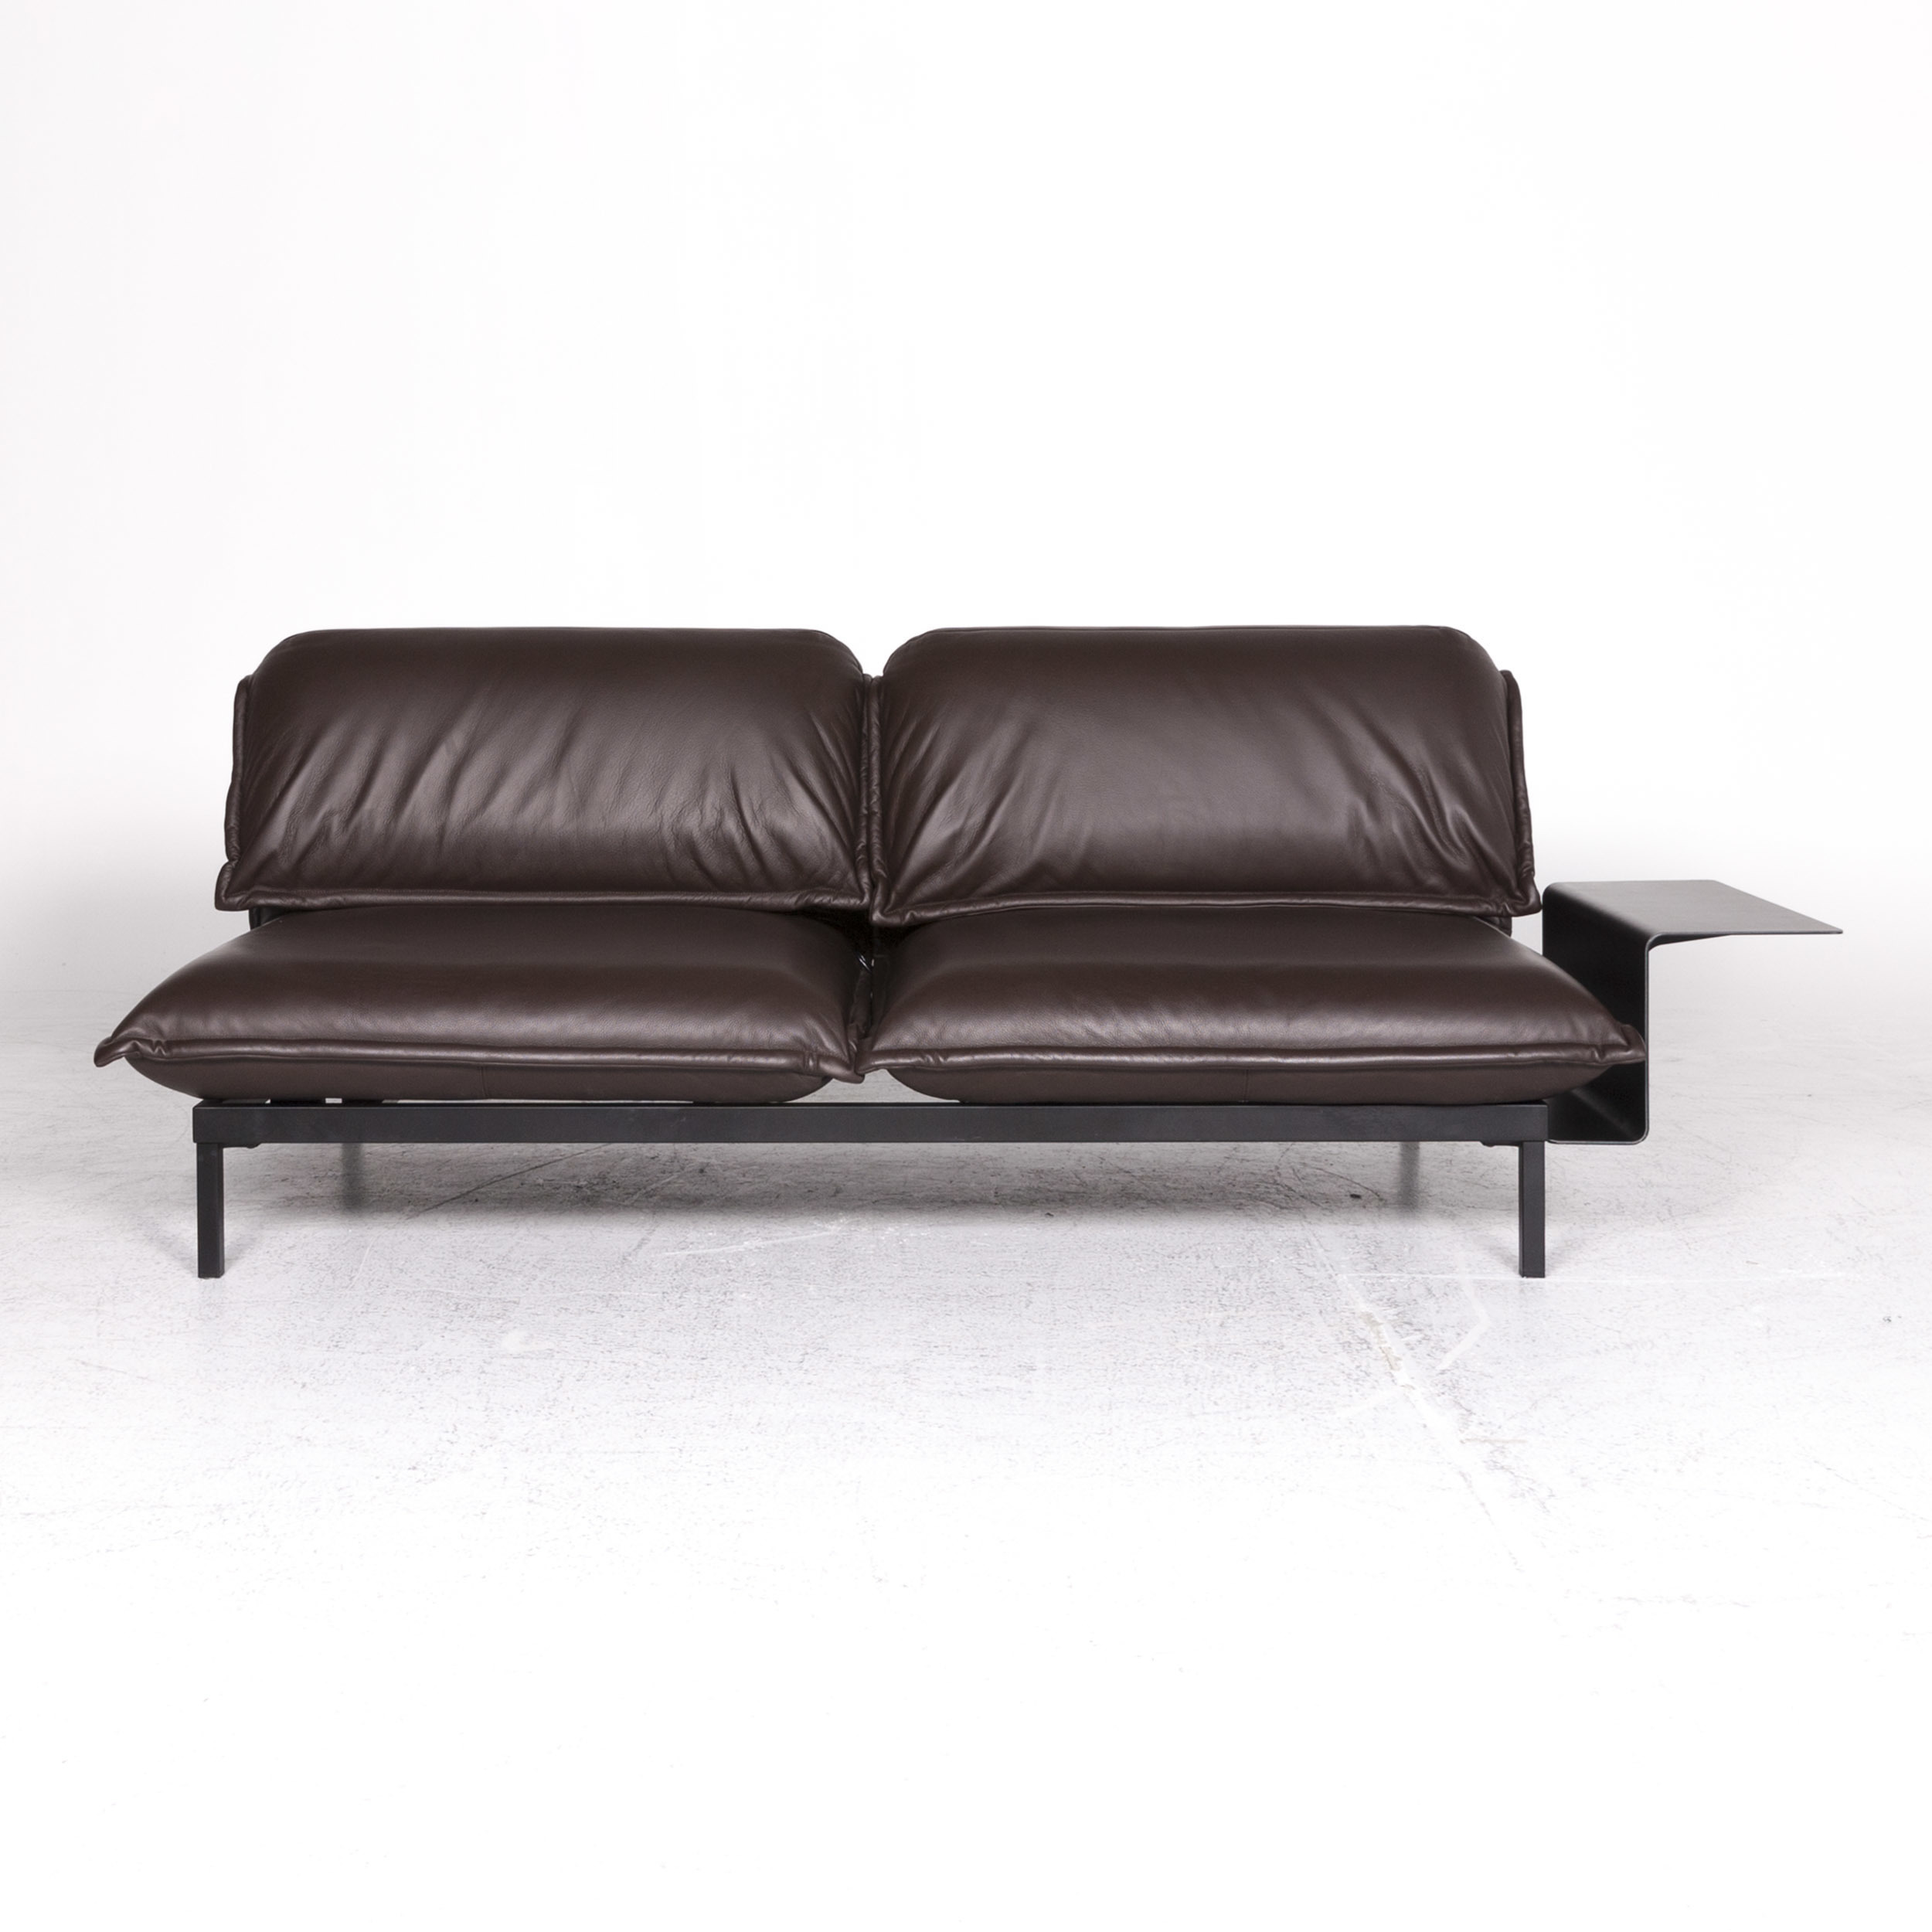 Rolf Benz Nova Rolf Benz Nova Designer Leather Sofa Brown Two Seater Function Couch 8253 Rolf Benz Vinterior Co